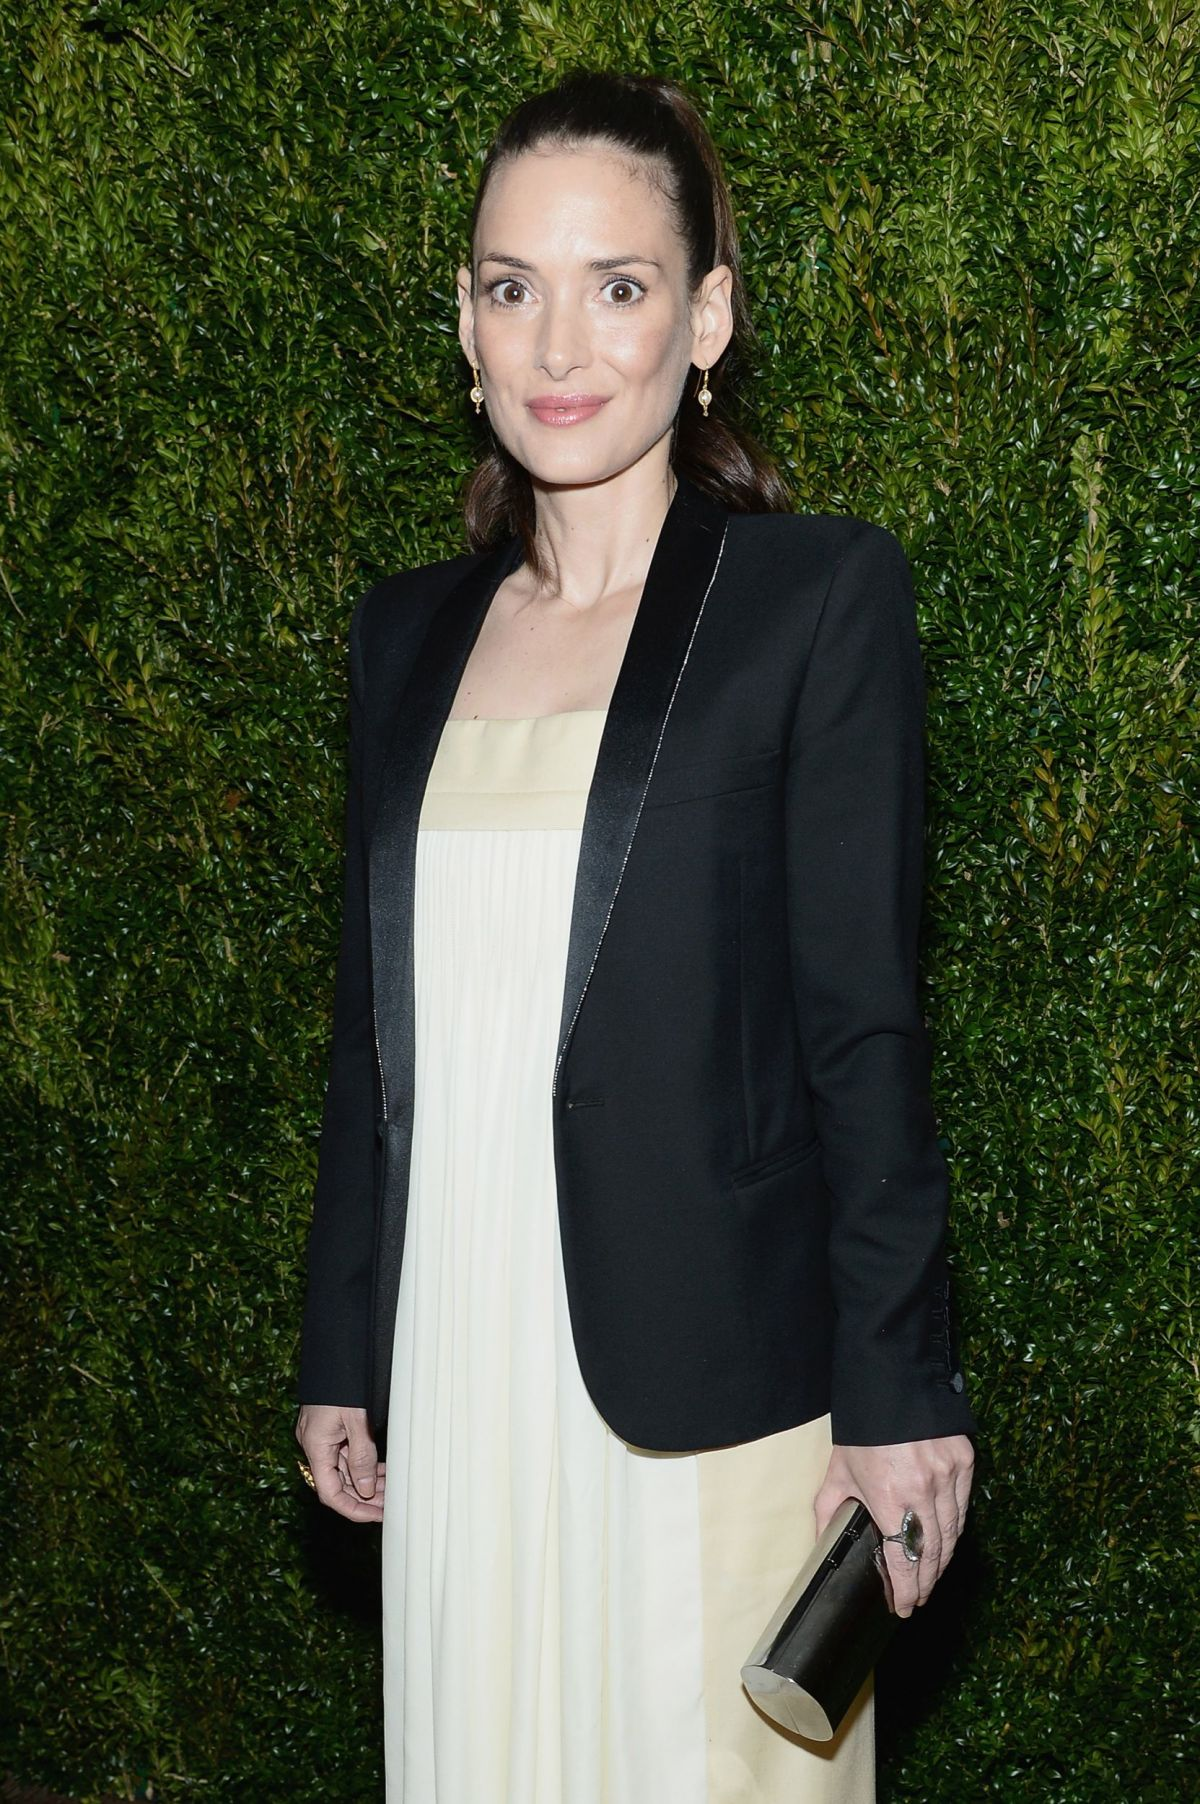 WINONA RYDER at Turks and Caicos Screening in Hollywood